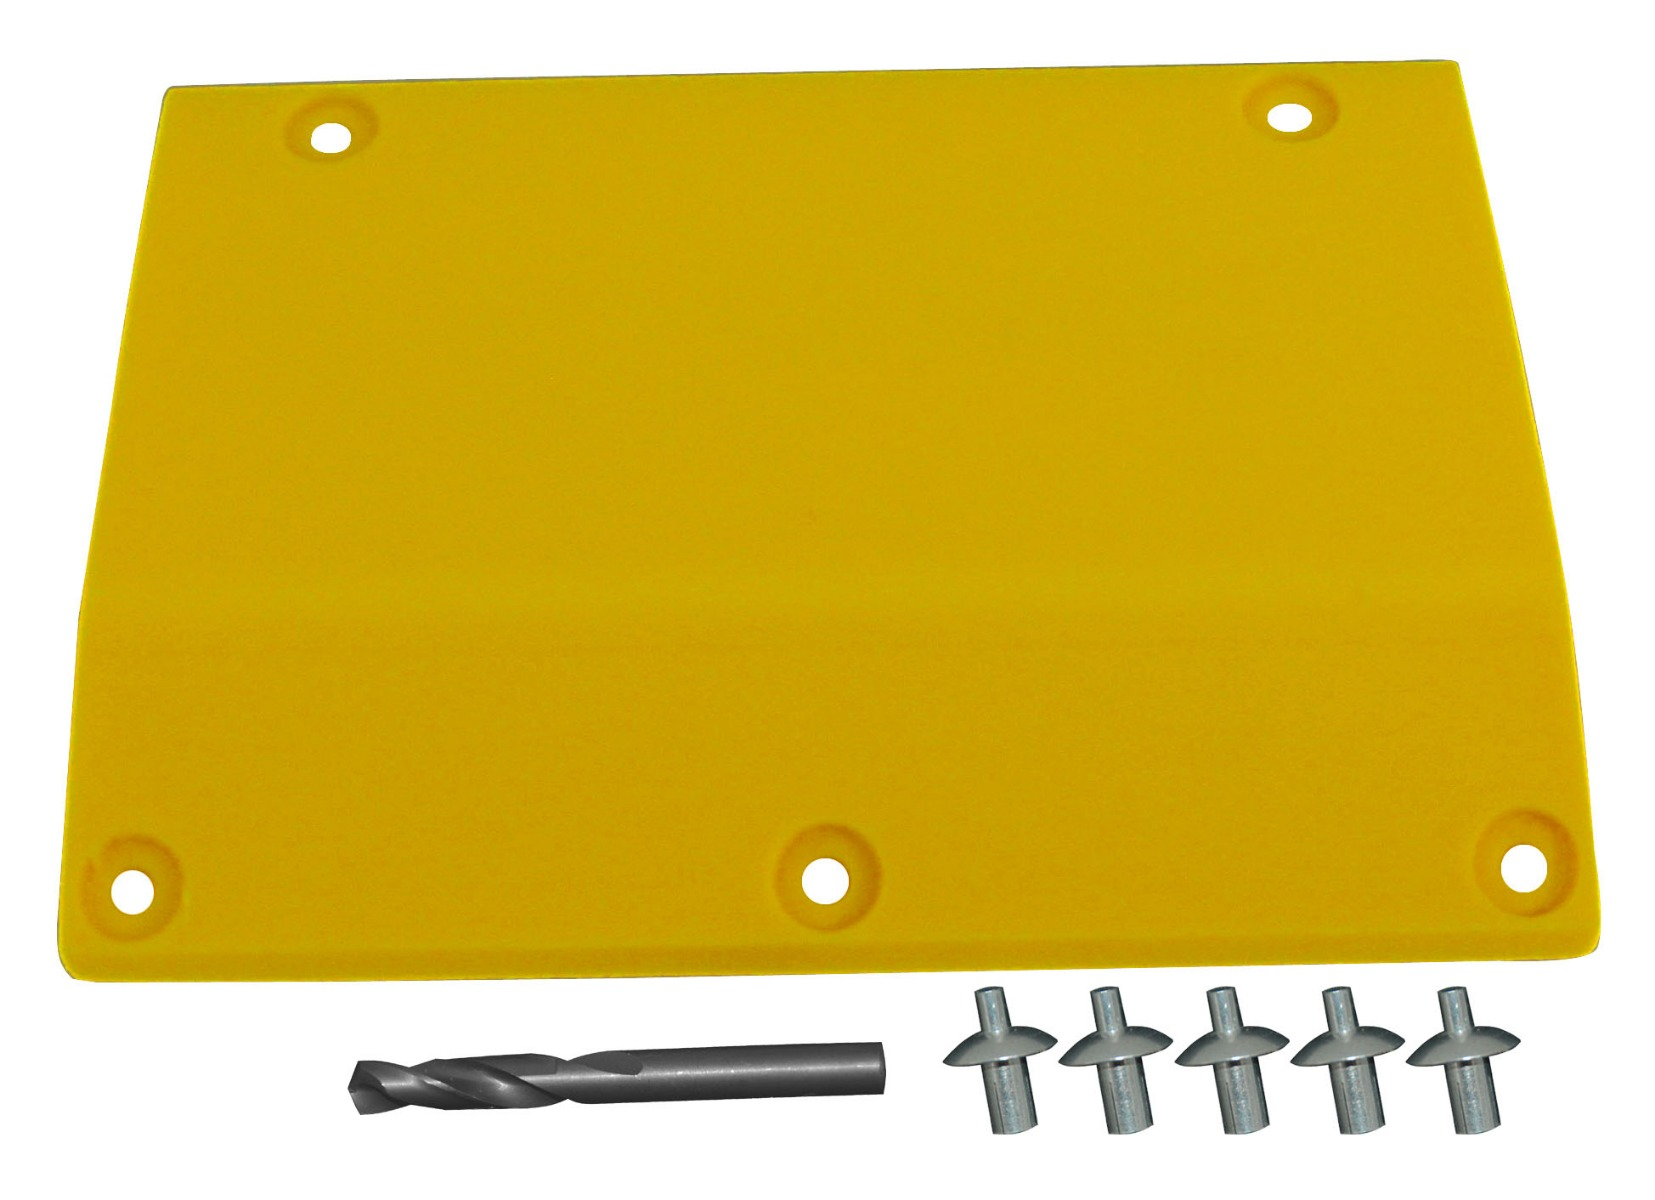 "John Deere 600 Series Flex Panel 9"" x 12"" Yellow"